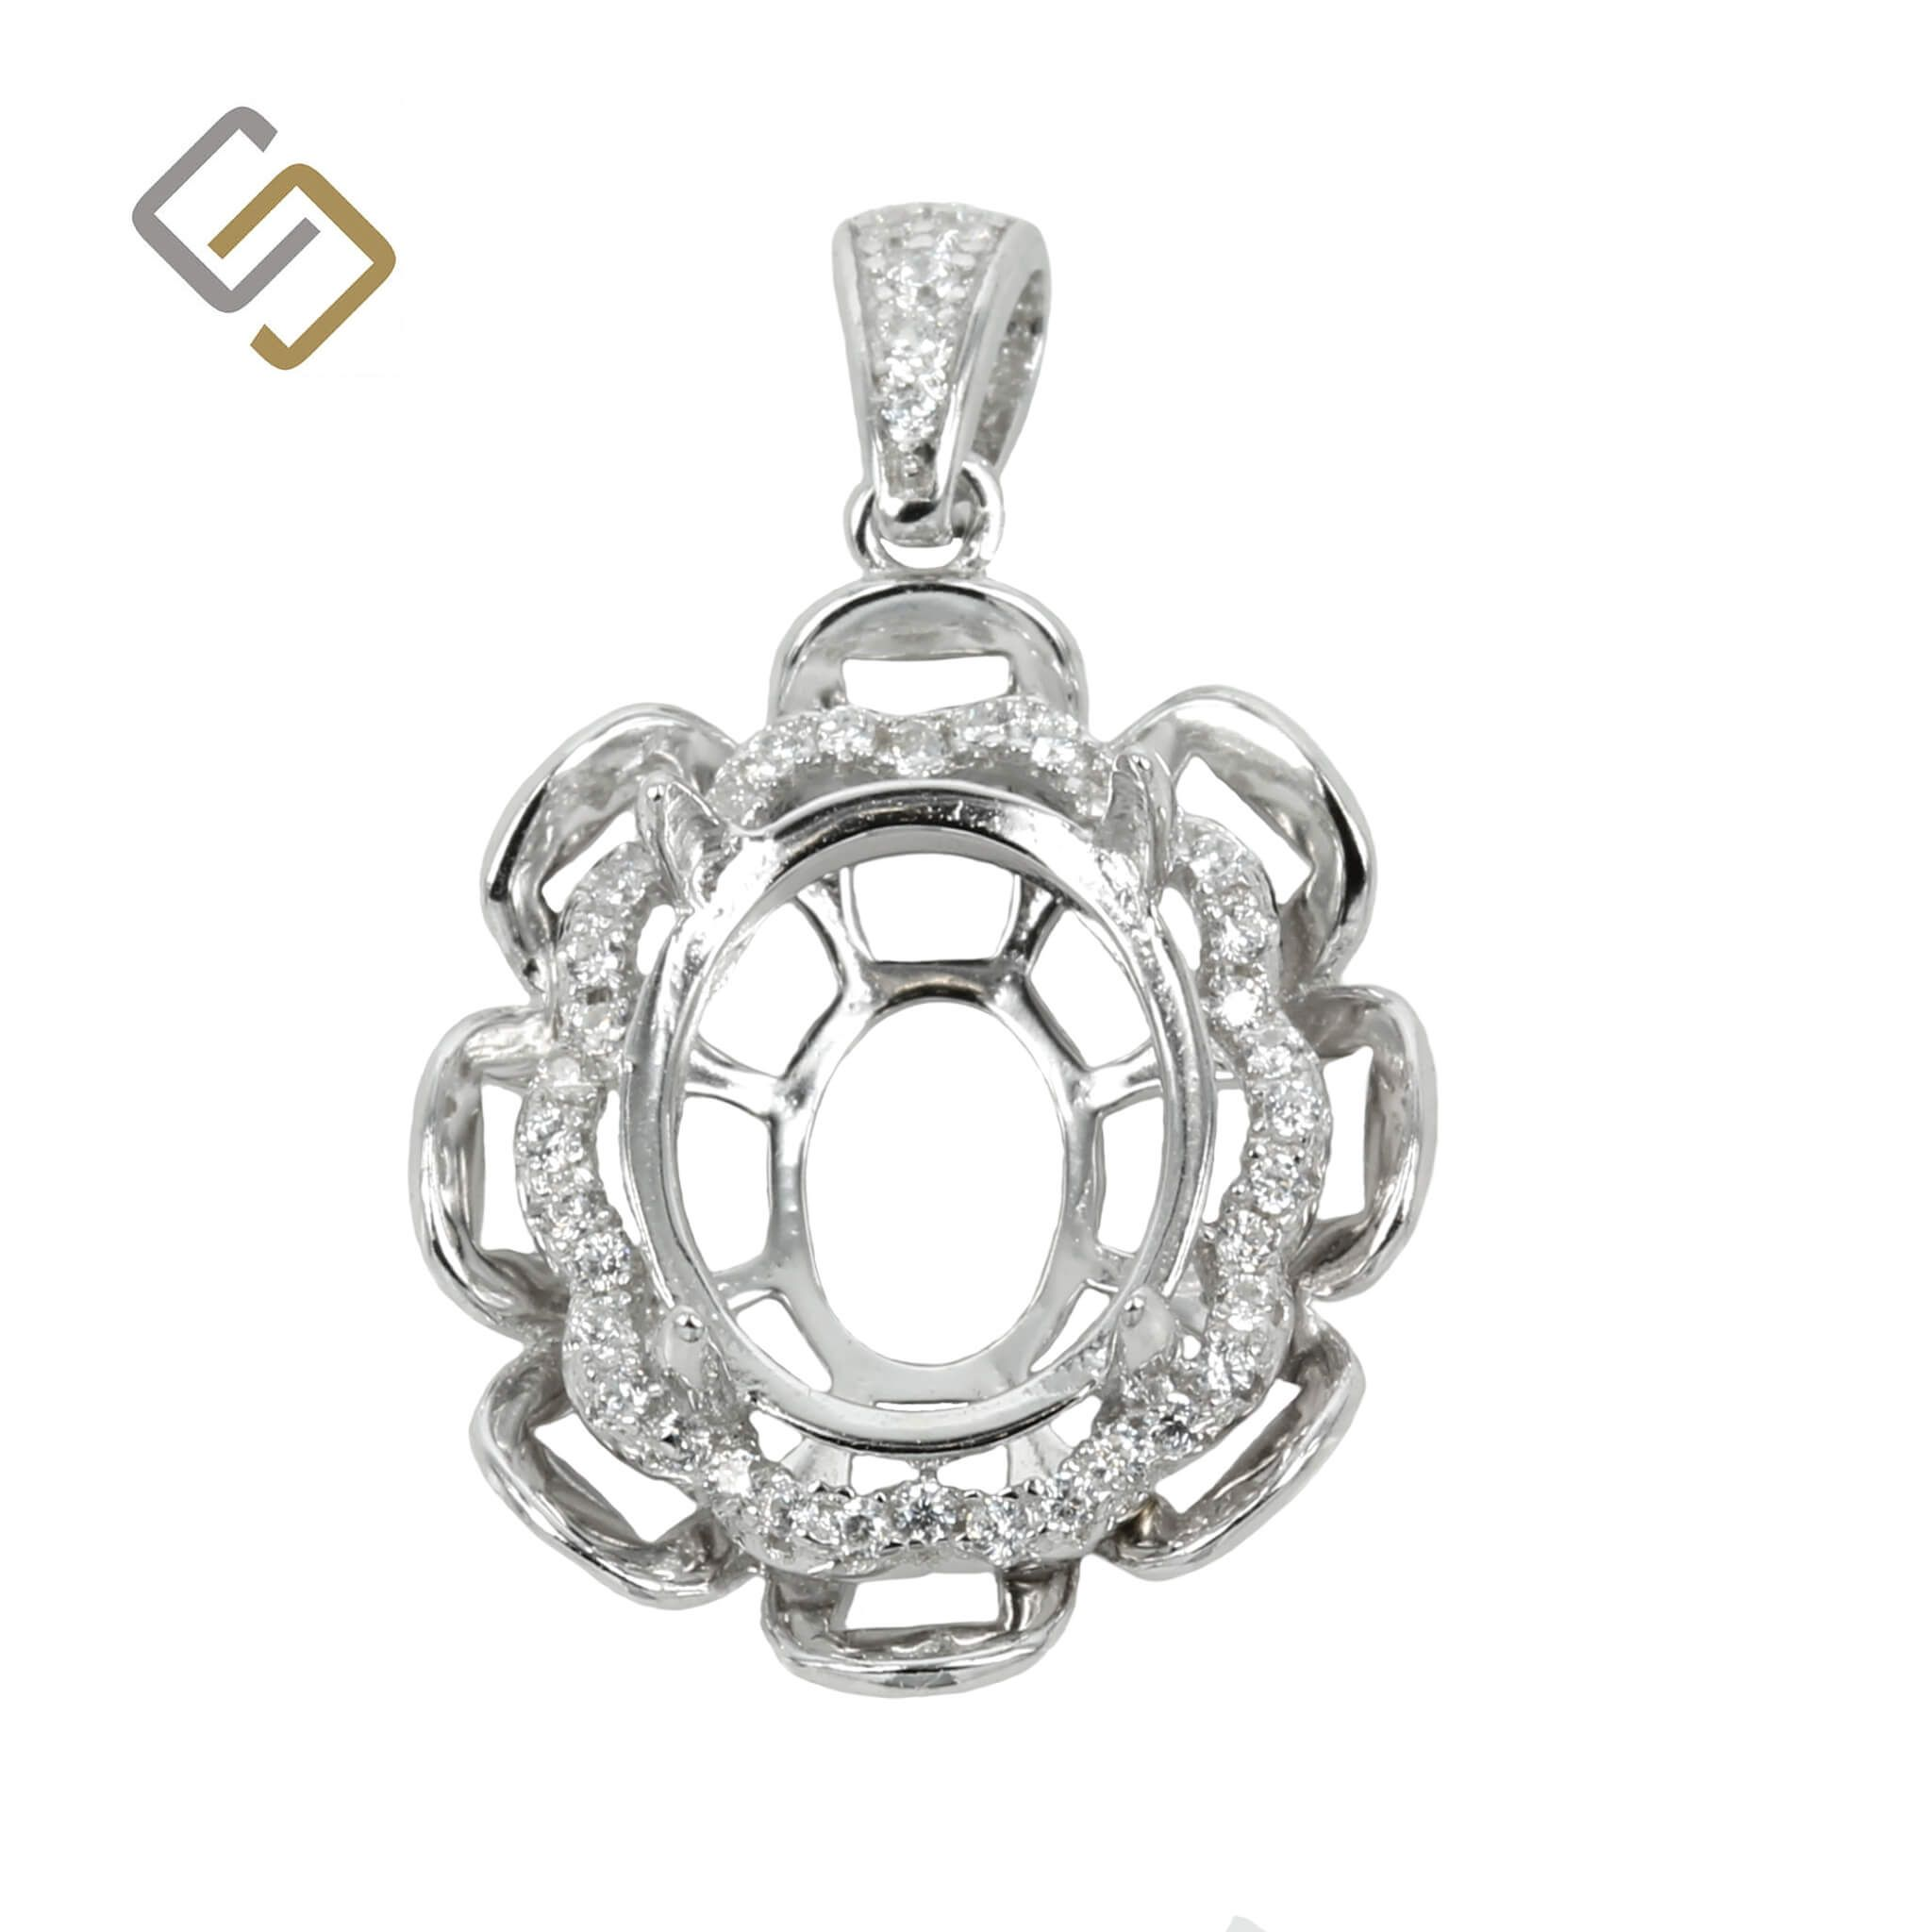 Oval Flower Pendant with Cubic Zirconias Set Frame and